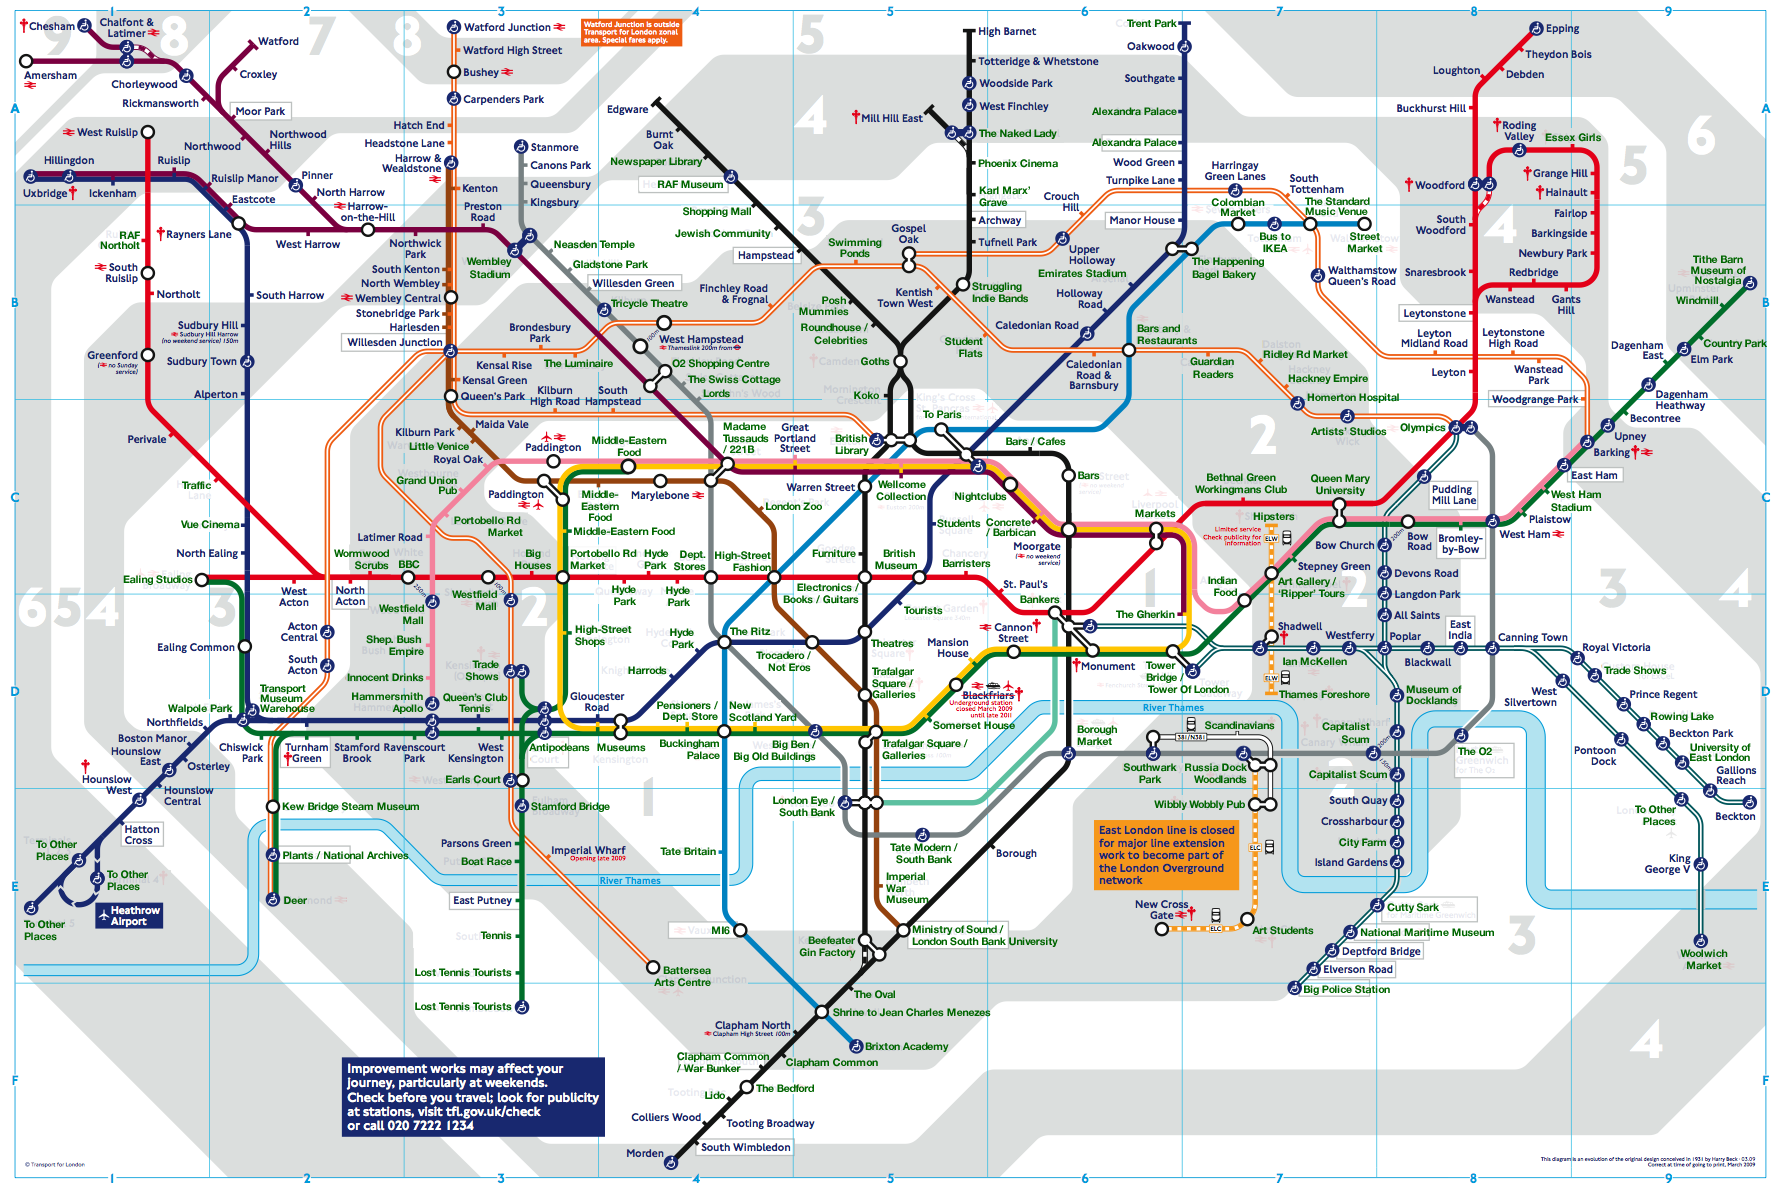 London Points Of Interest Map.London Tube Map Renaming Stations With Points Of Interest Dan